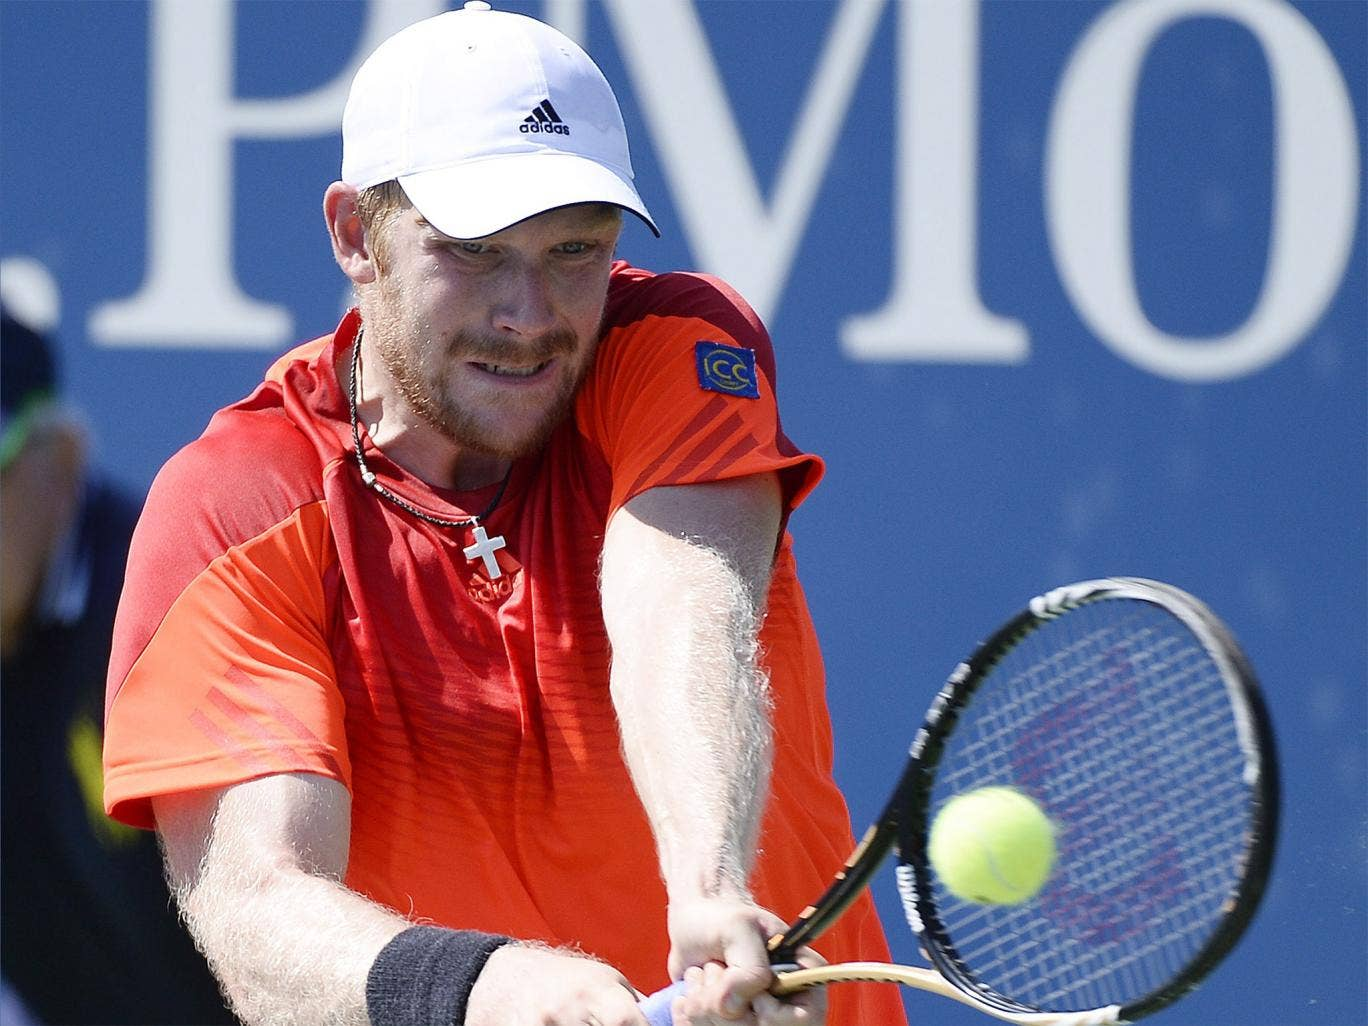 Matthias Bachinger did not even get an automatic place in the US Open qualifying event